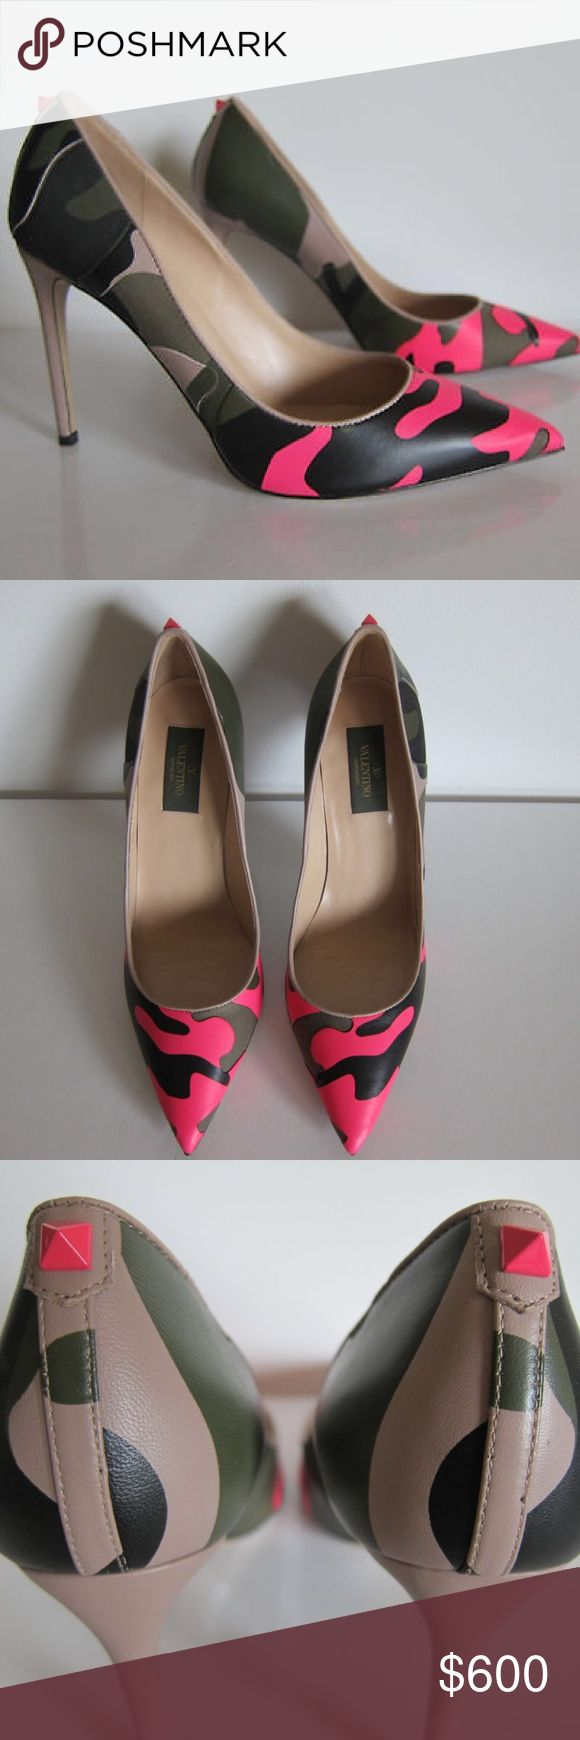 Valentino shoes Army fatigue print 4 inch high heels Valentino Shoes Heels